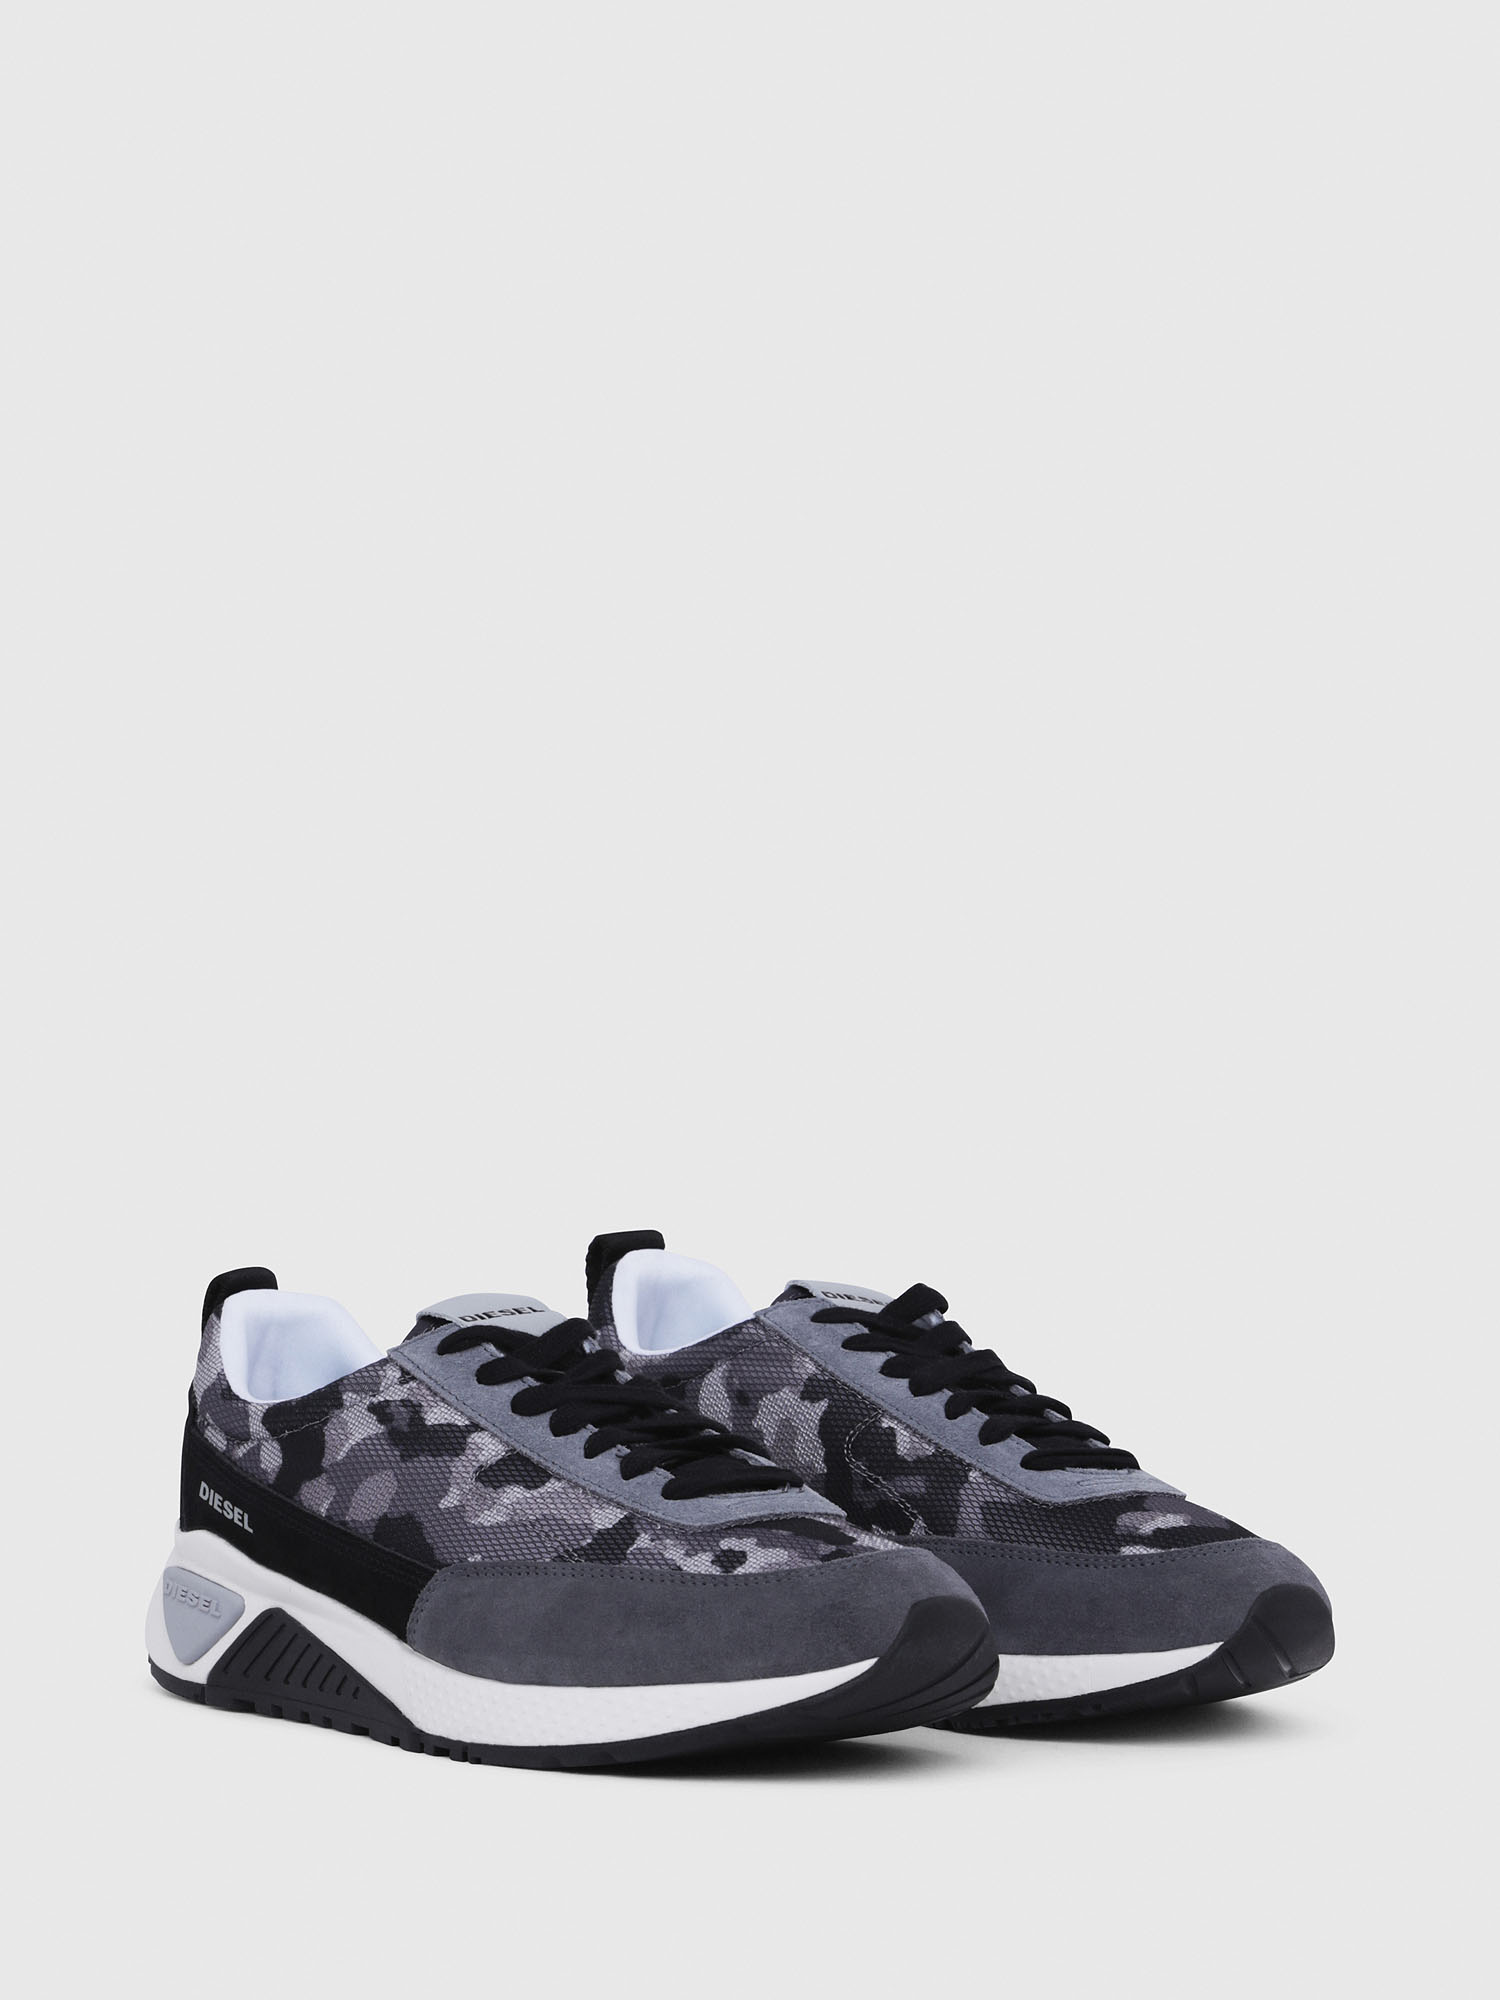 Diesel - S-KB LOW LACE,  - Sneakers - Image 2